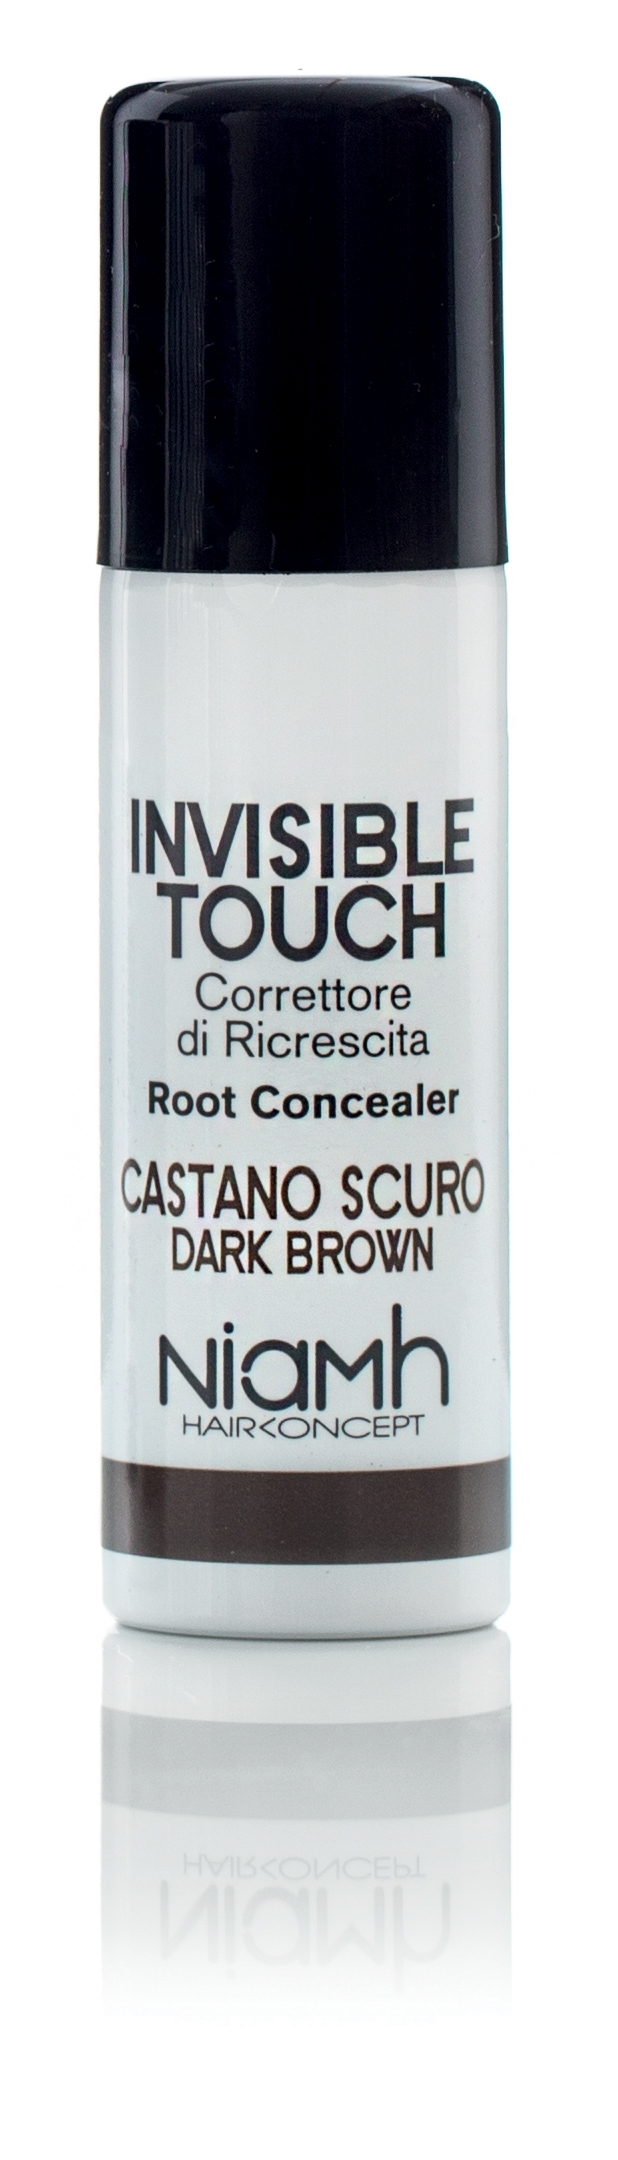 Niamh Hairkoncept Invisible Touch Root Concealer Dark Brown 75 ml - korektor tmavě hnědý